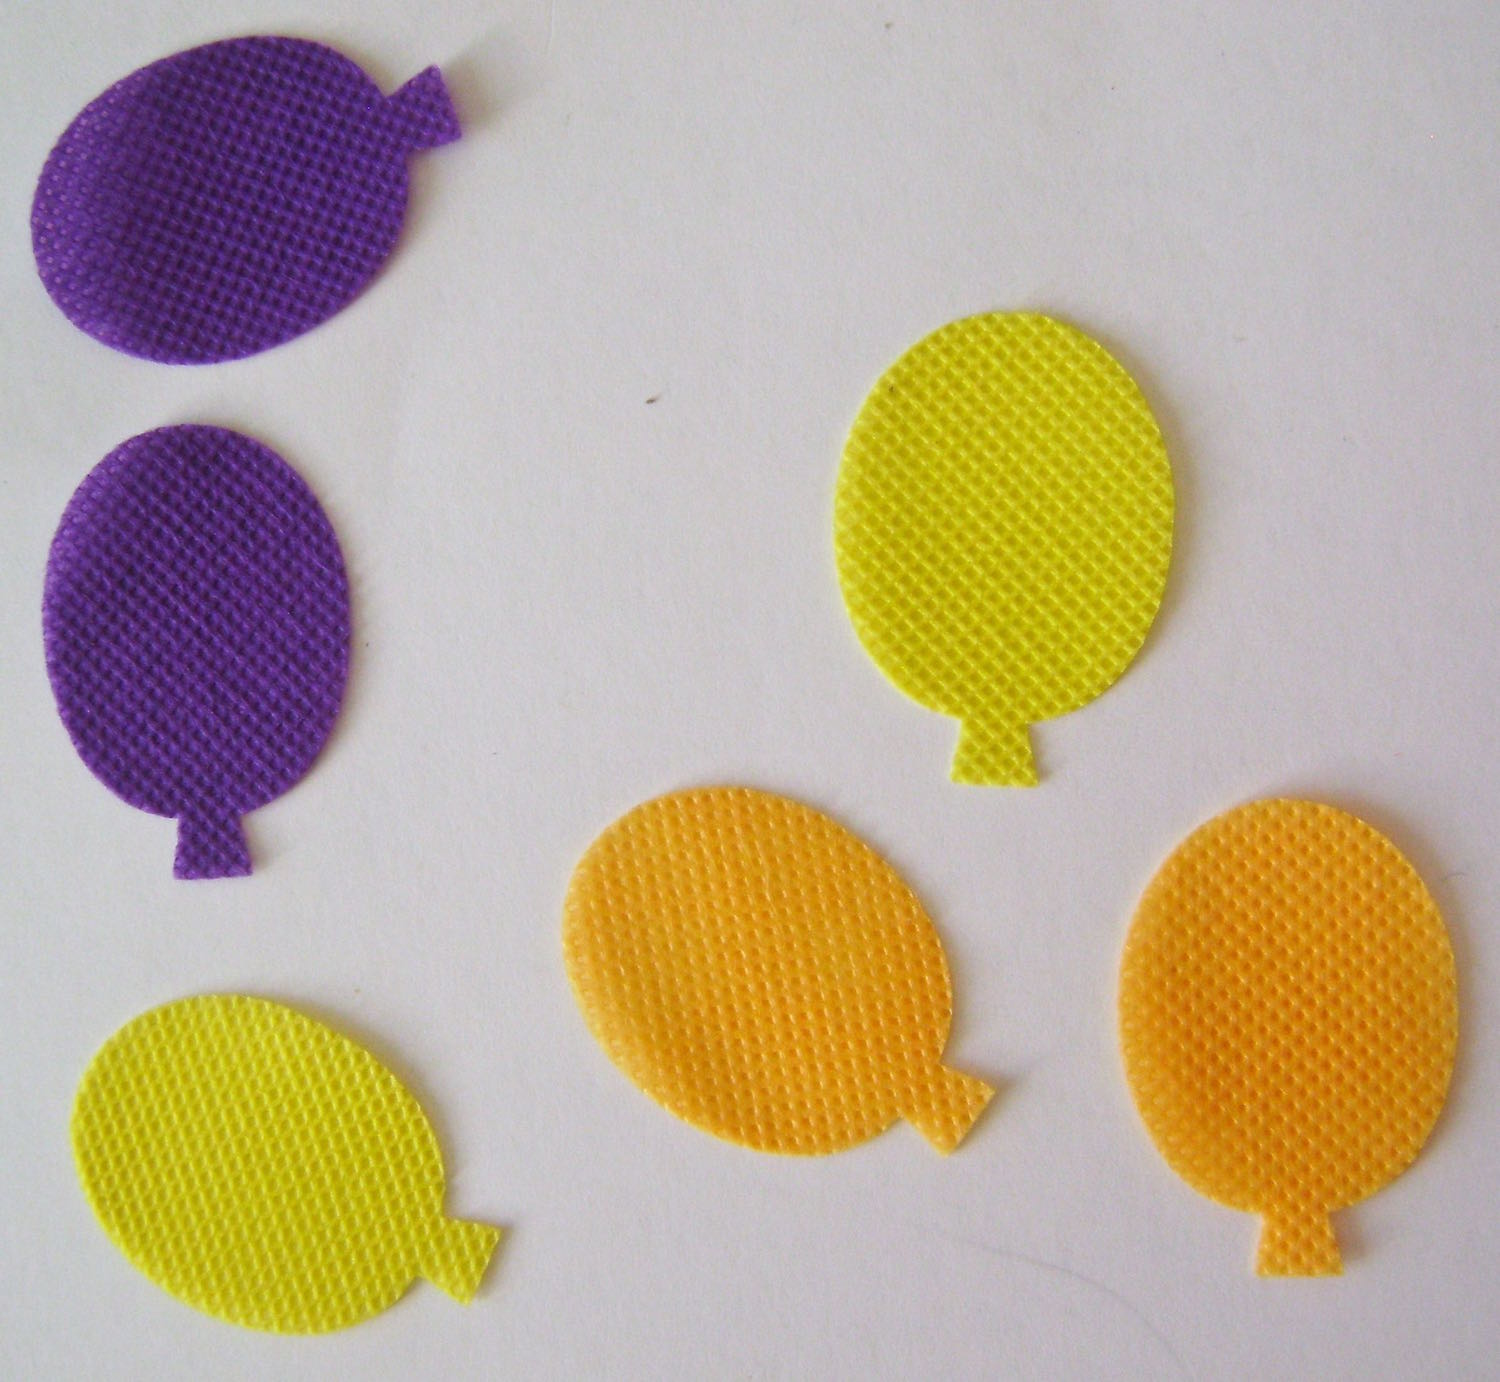 "step 8 - Cut six pairs of balloon shapes in a variety of fabric colors to measure about 1.25"".  Apply Turbo Tacky Glue to the perimeter of the balloons and put the matching color on top.  Leave the center bottoms open 1/4""."